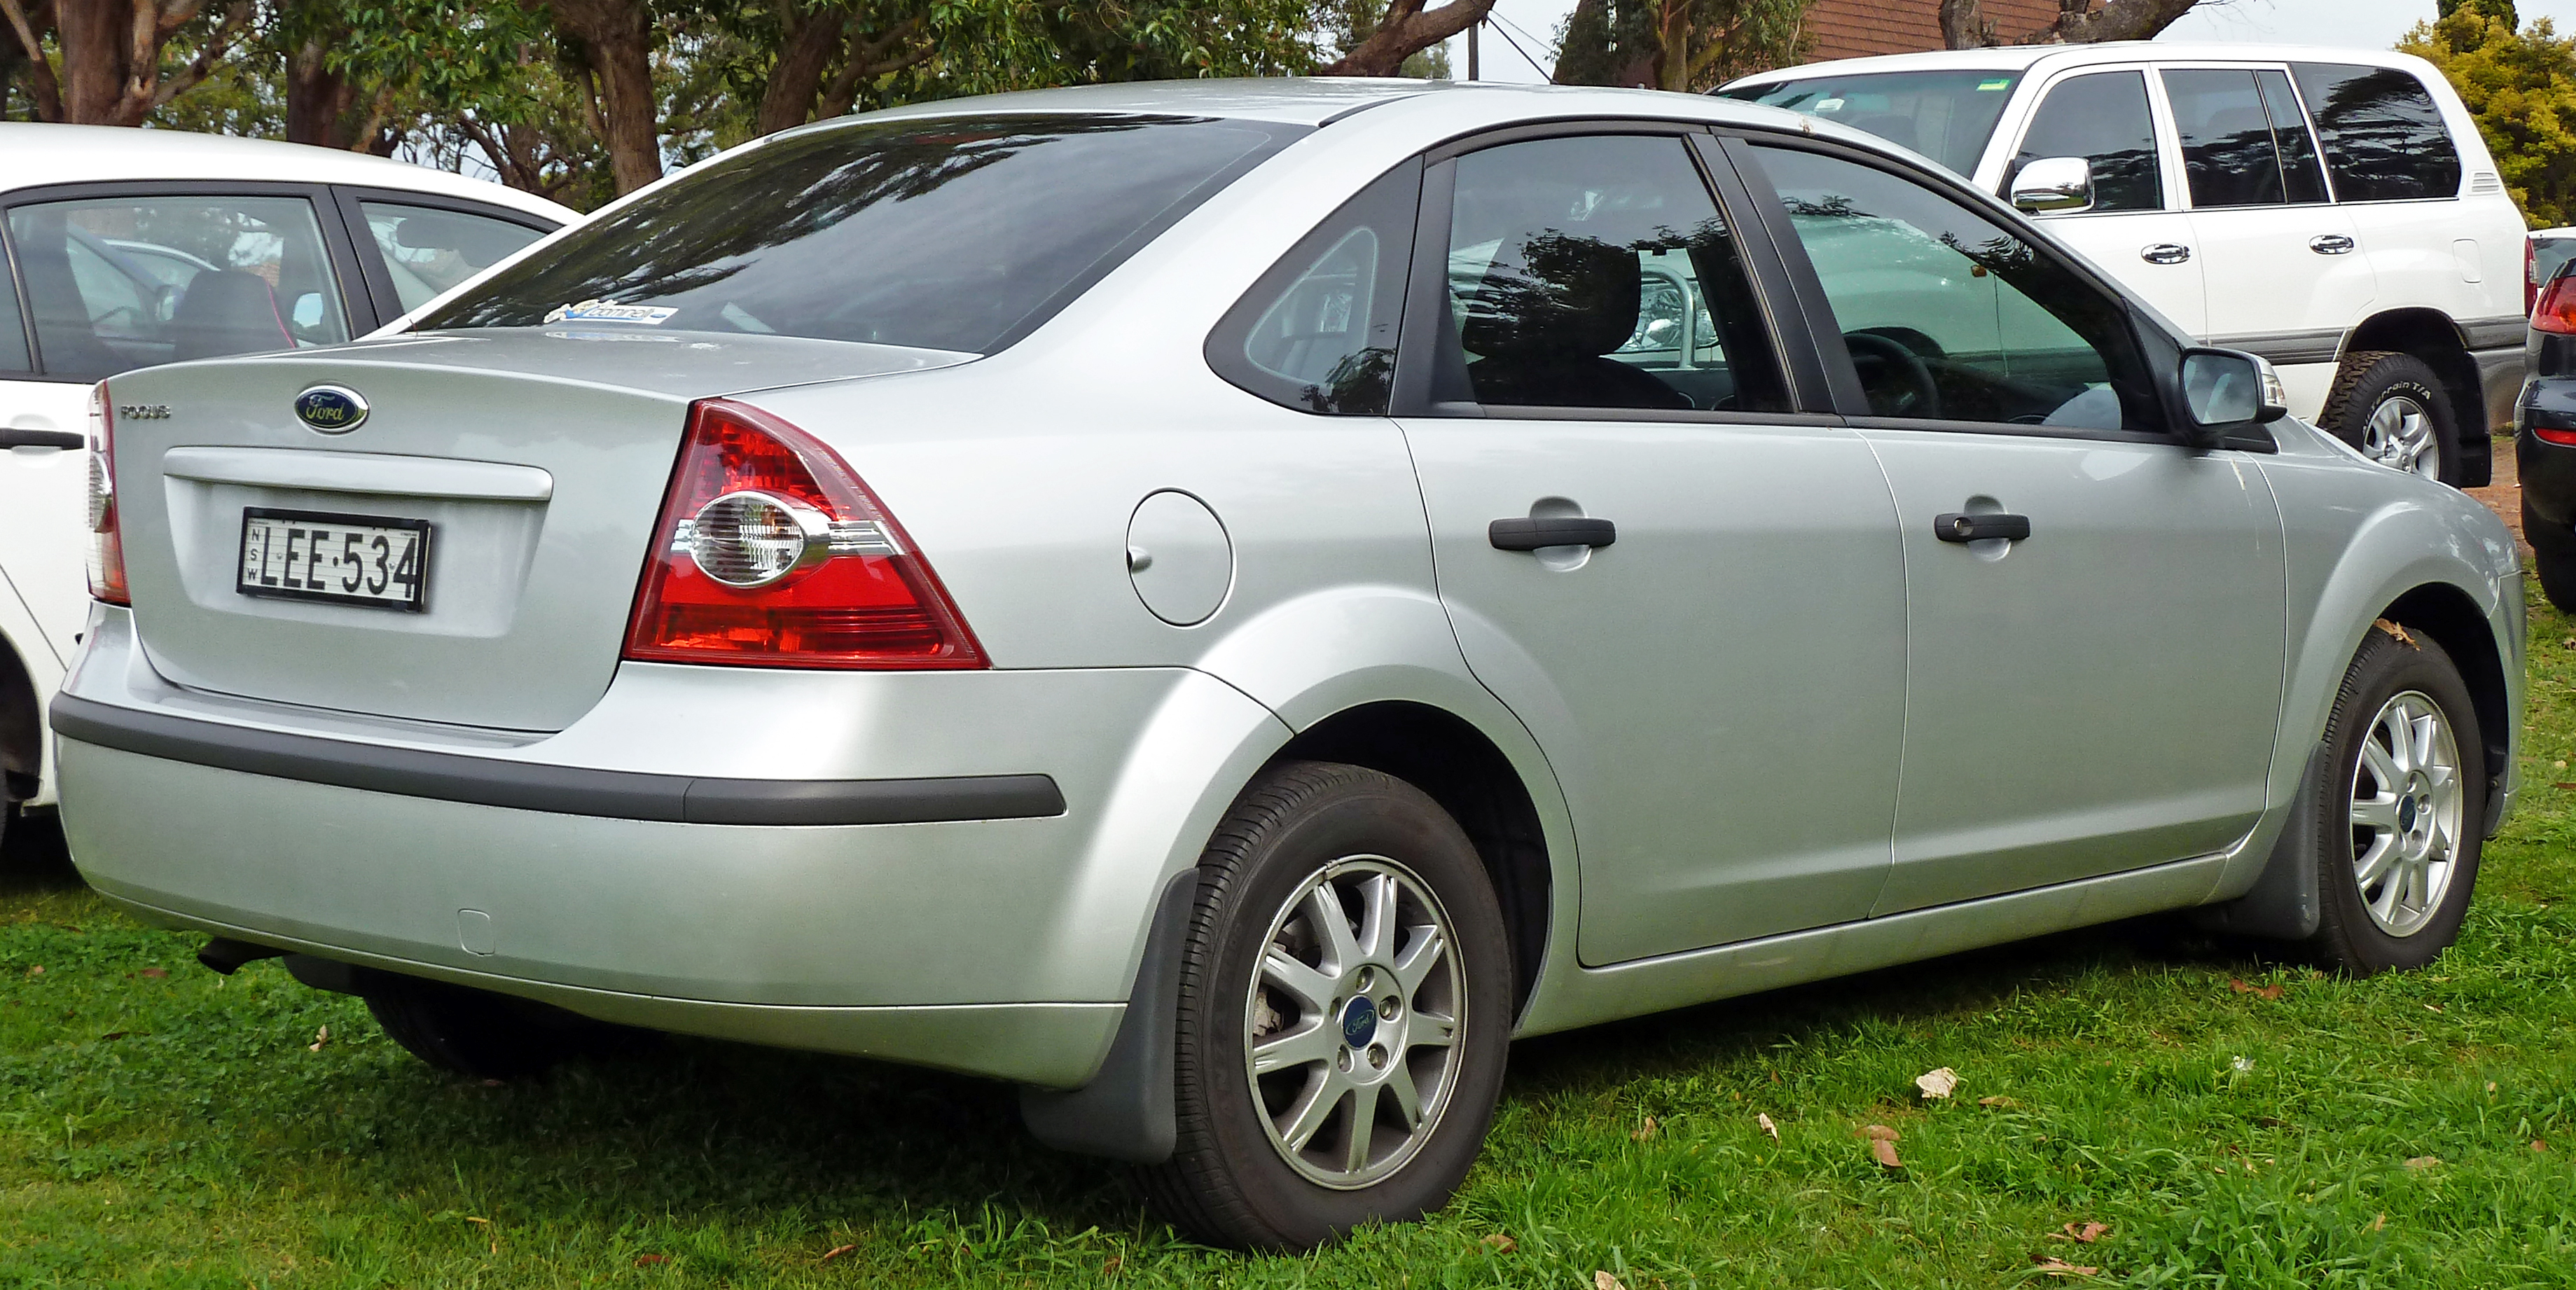 2007 ford focus image 21